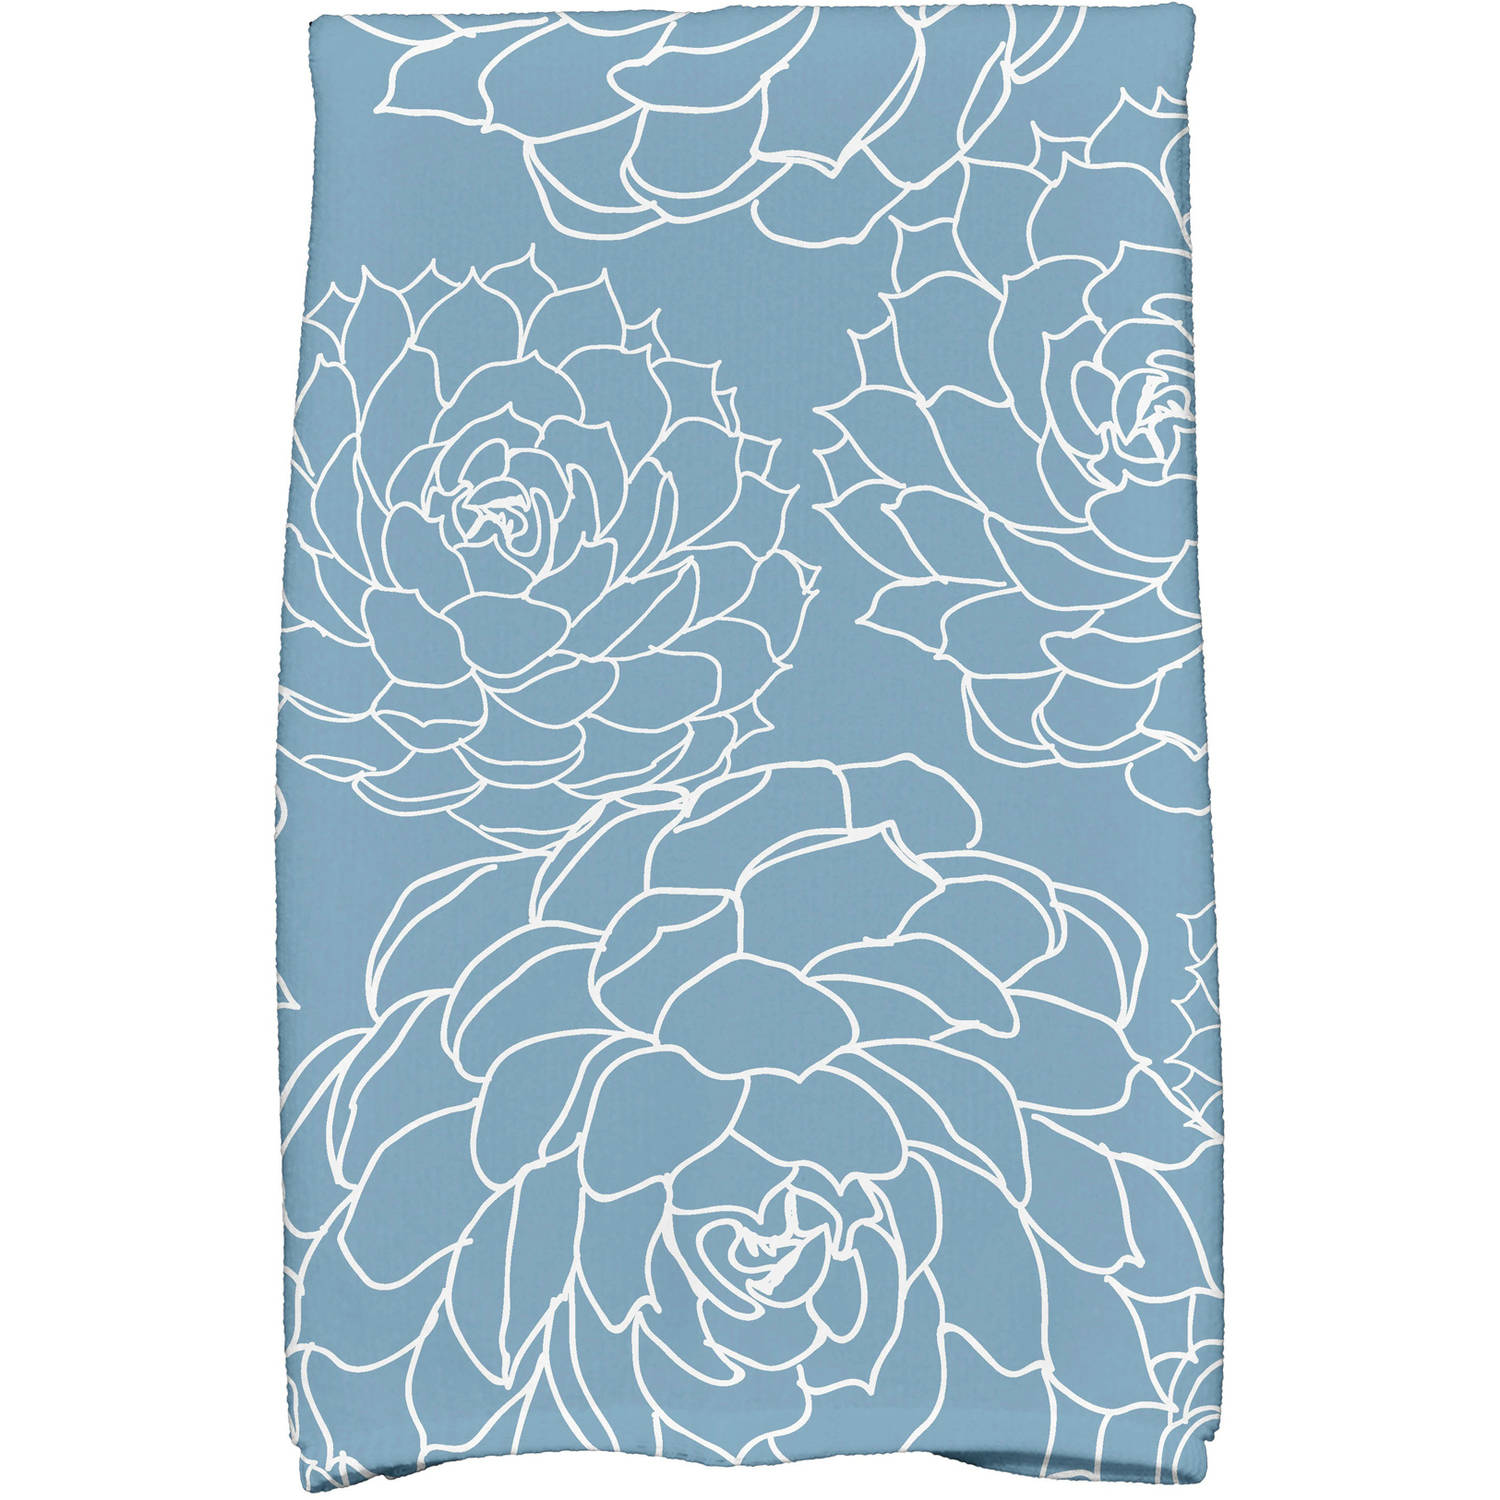 "Simply Daisy 16"" x 25"" Olena Floral Print Kitchen Towels"